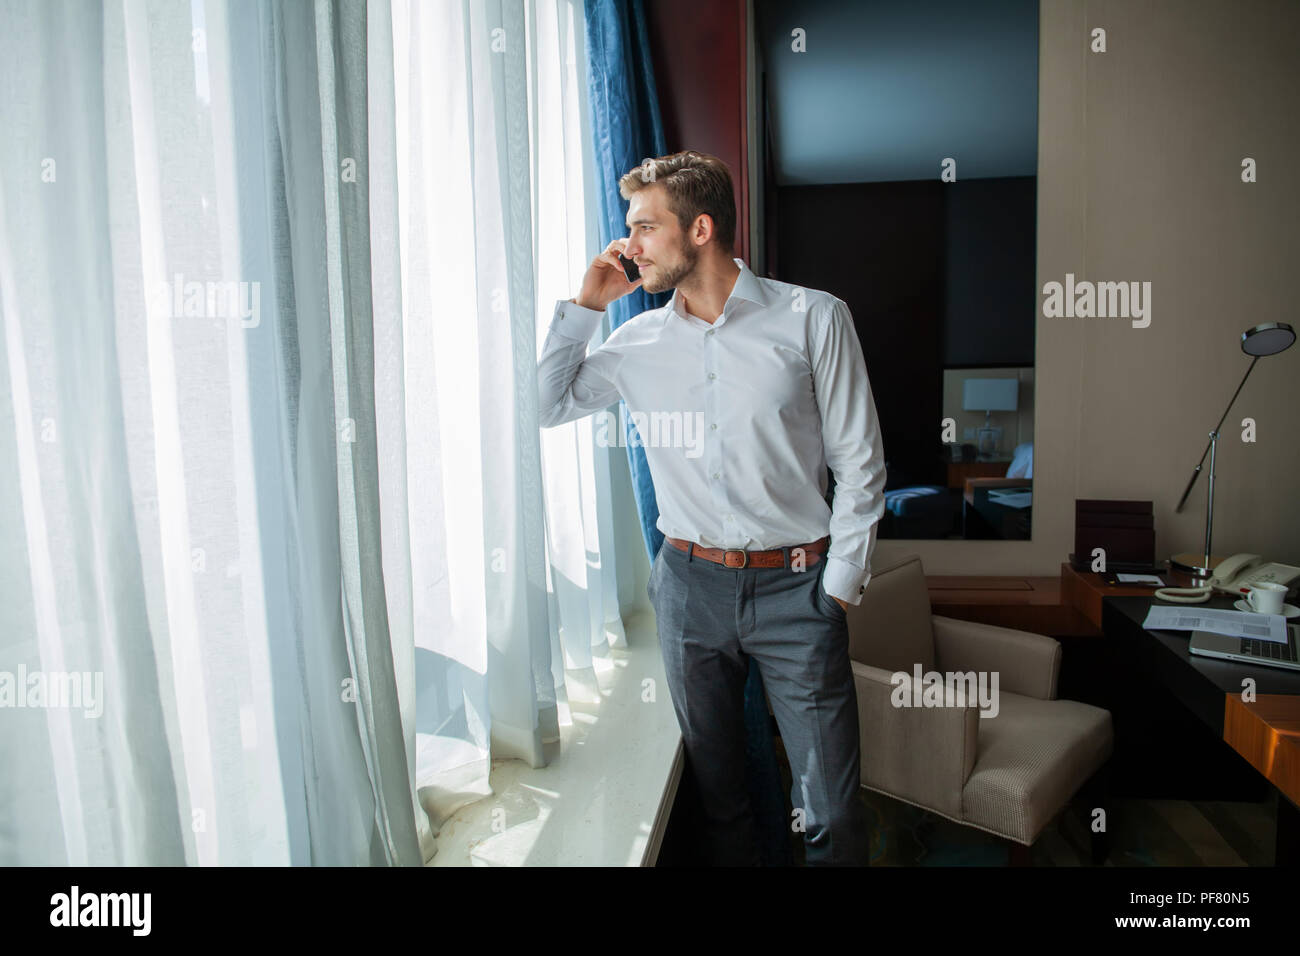 Caucasian mid adult businessman talking with mobile telephone in hotel room during business trip. - Stock Image